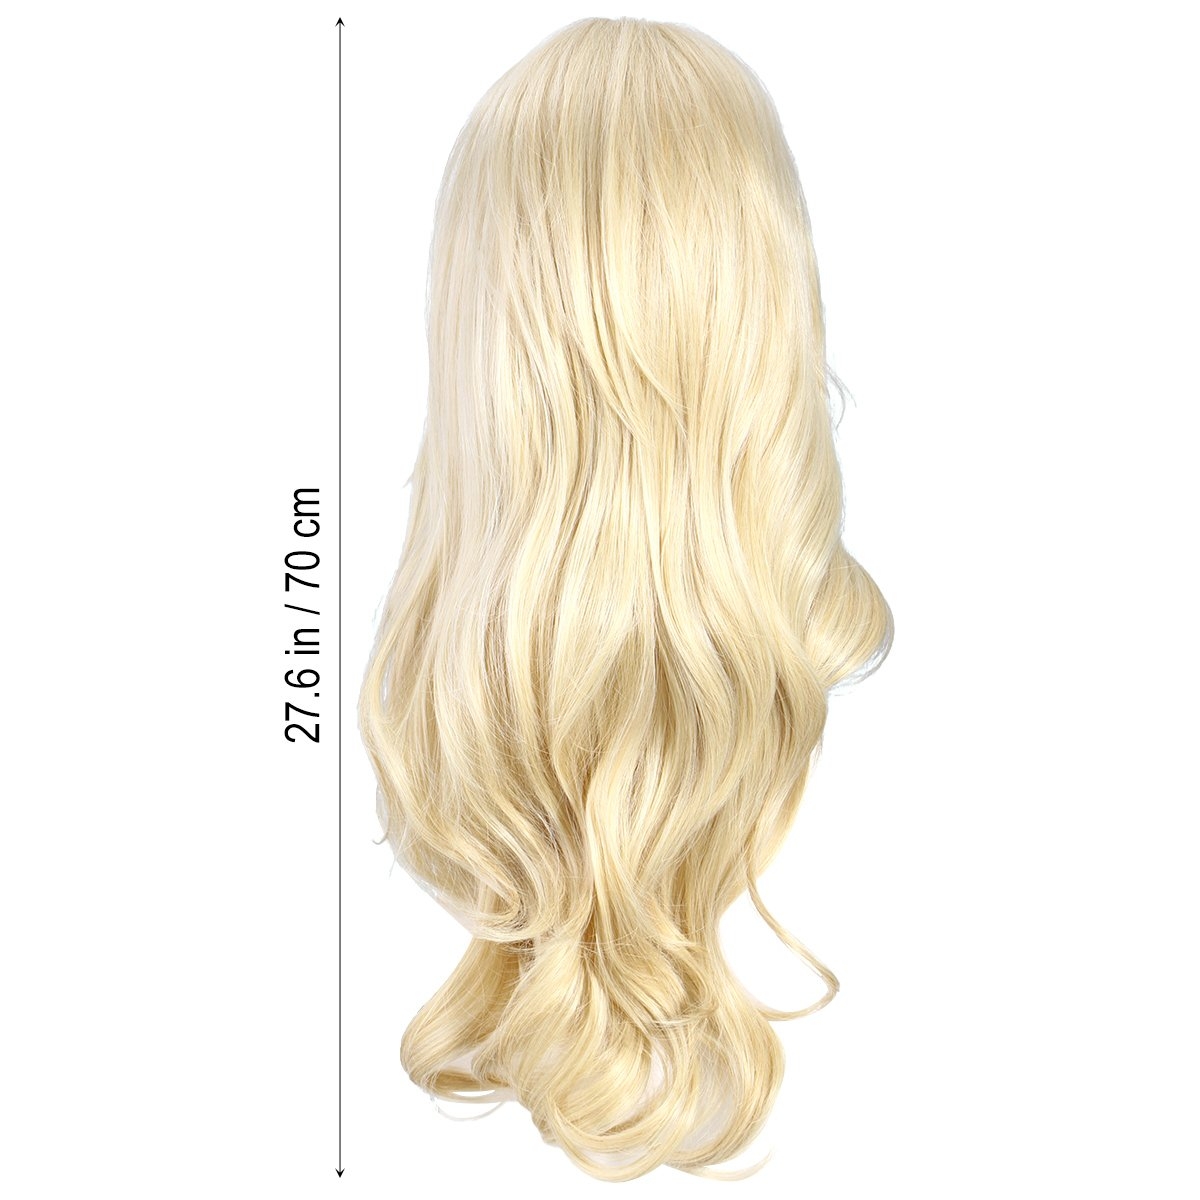 Amazon.com : Long Blonde Wavy Wig Synthetic Wavy Wigs Cosplay Wigs for Women : Beauty